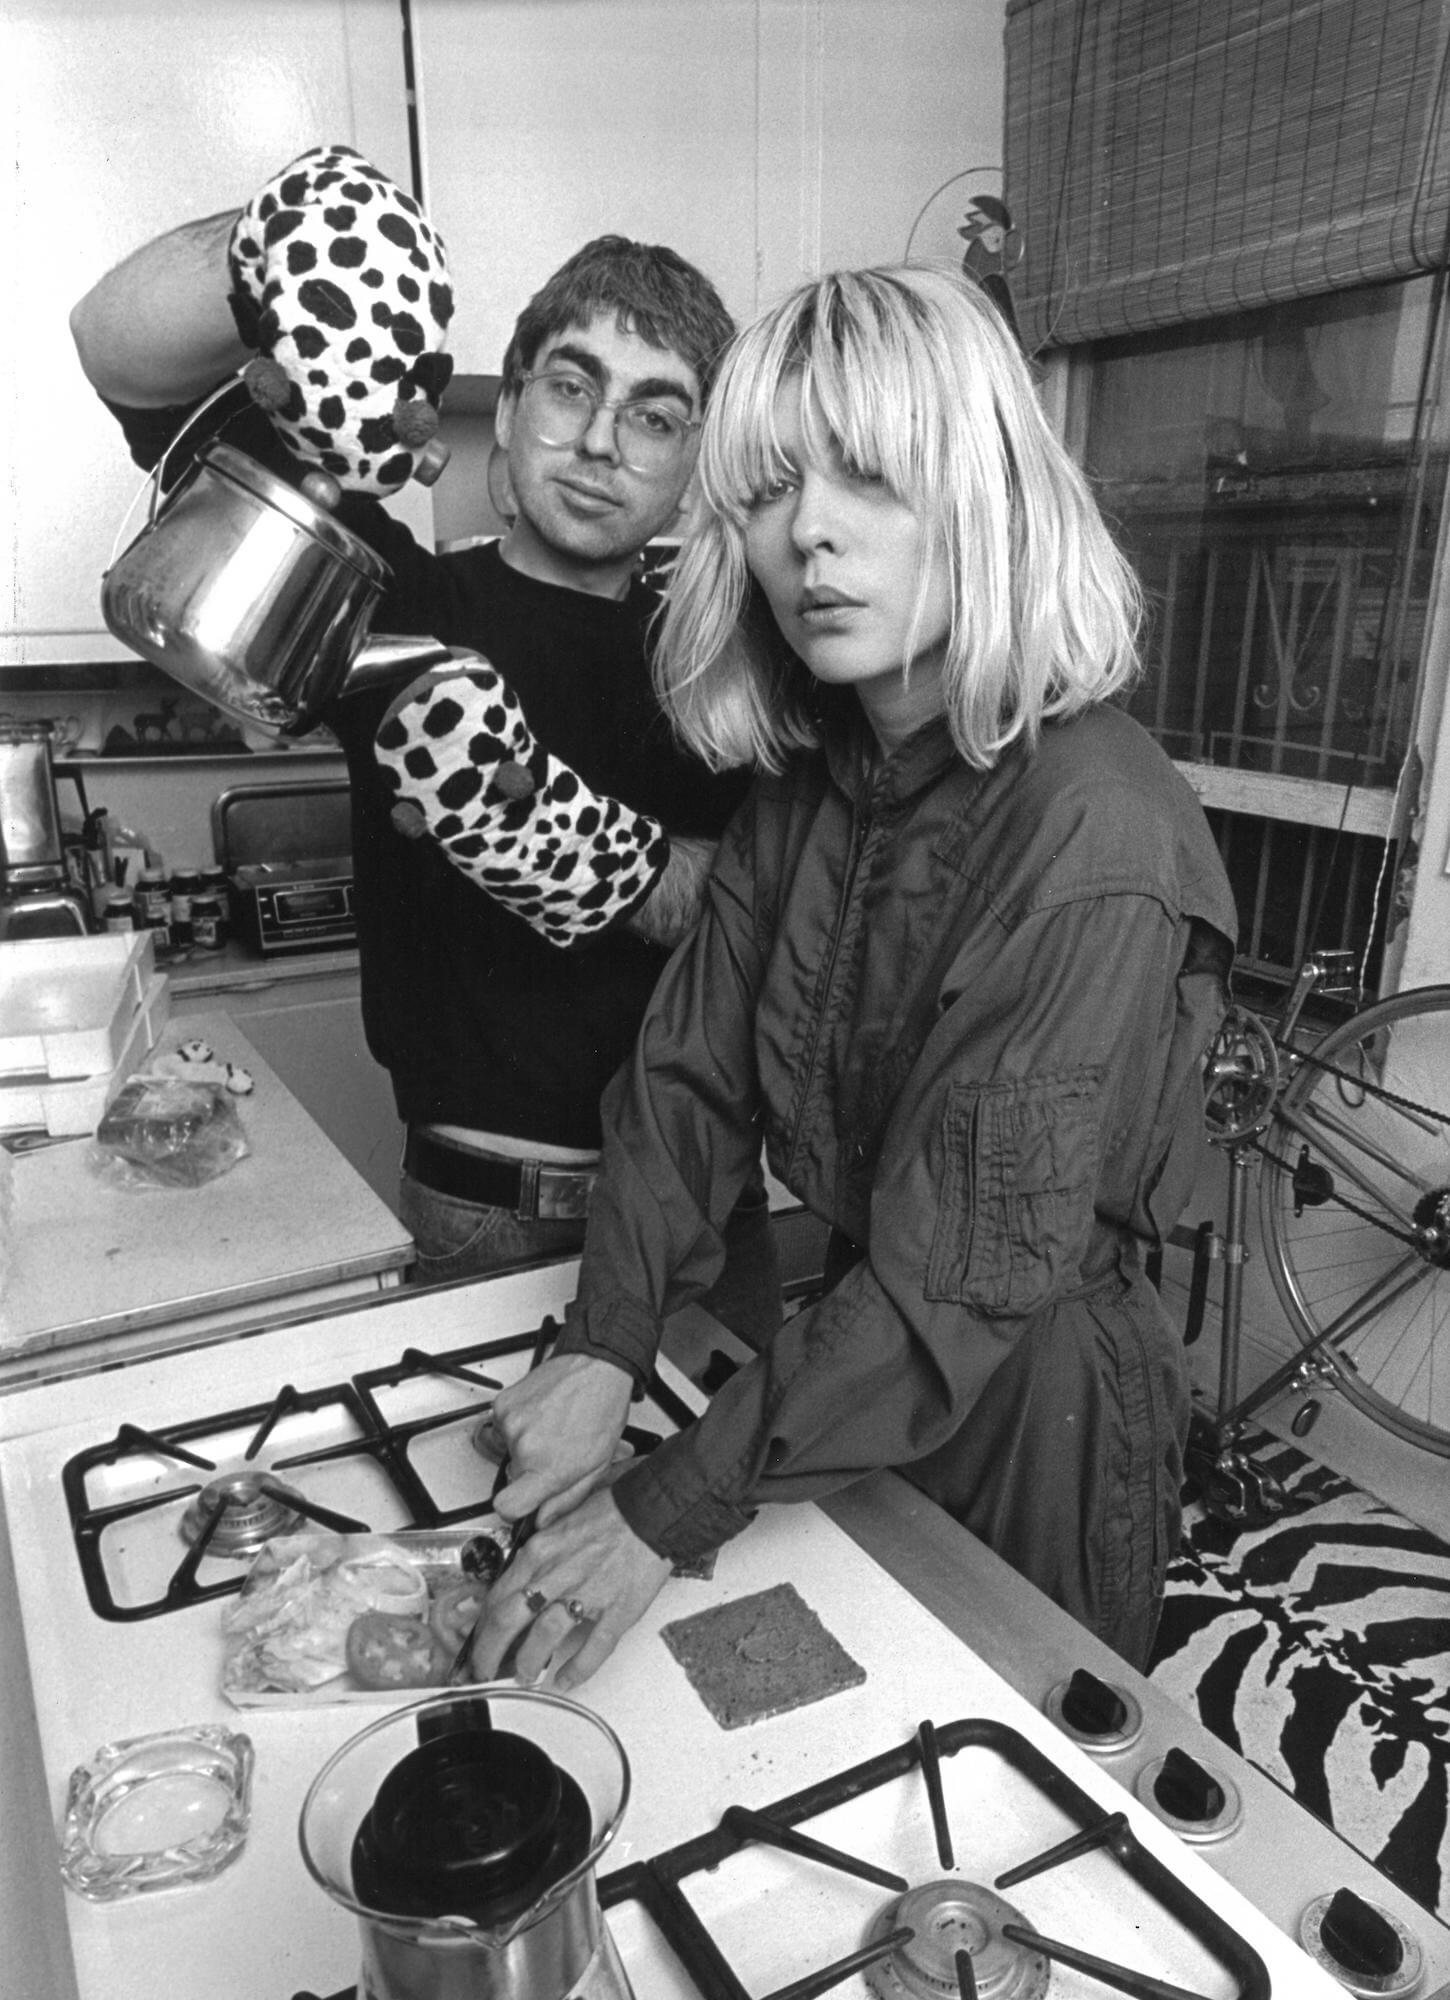 Blondie (Debbie Harry) in the Kitchen, 1981